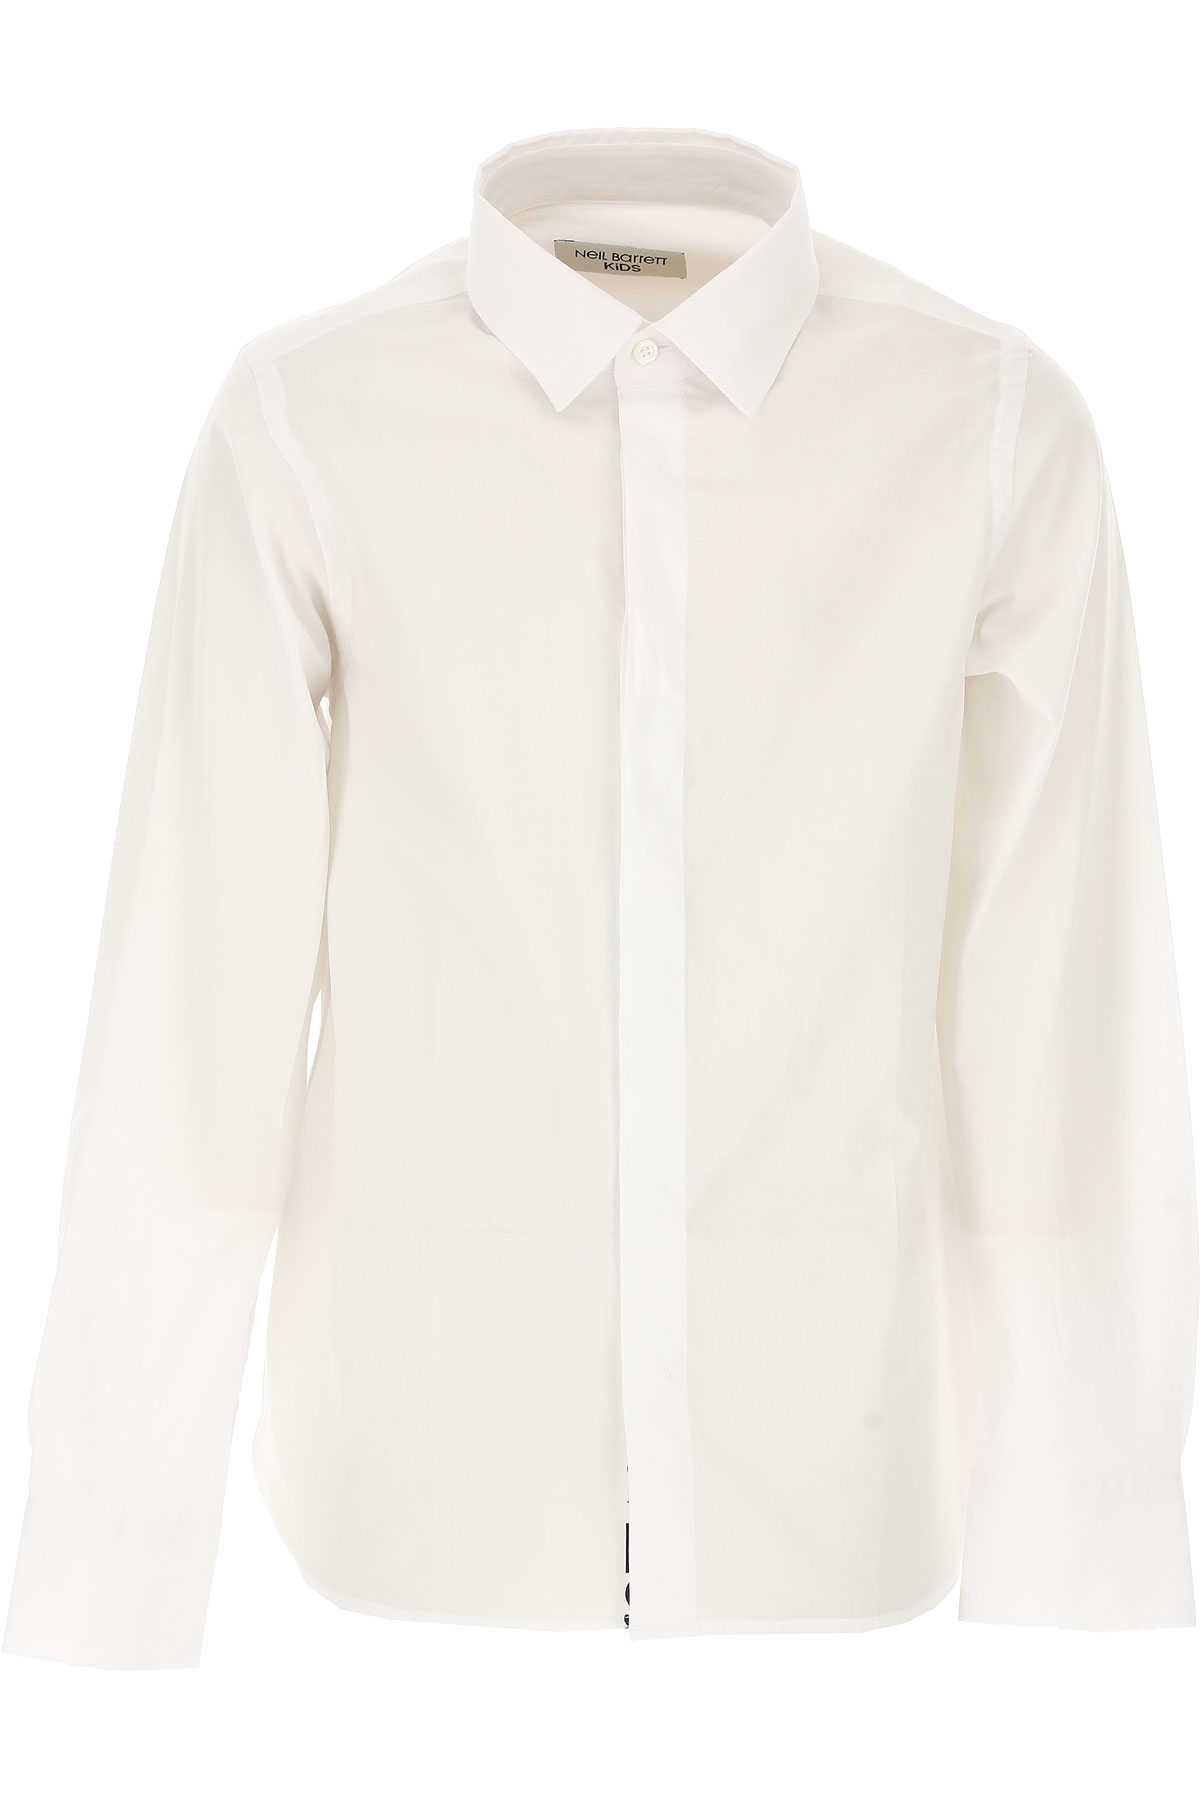 Neil Barrett Kids Shirts for Boys On Sale White SE - GOOFASH